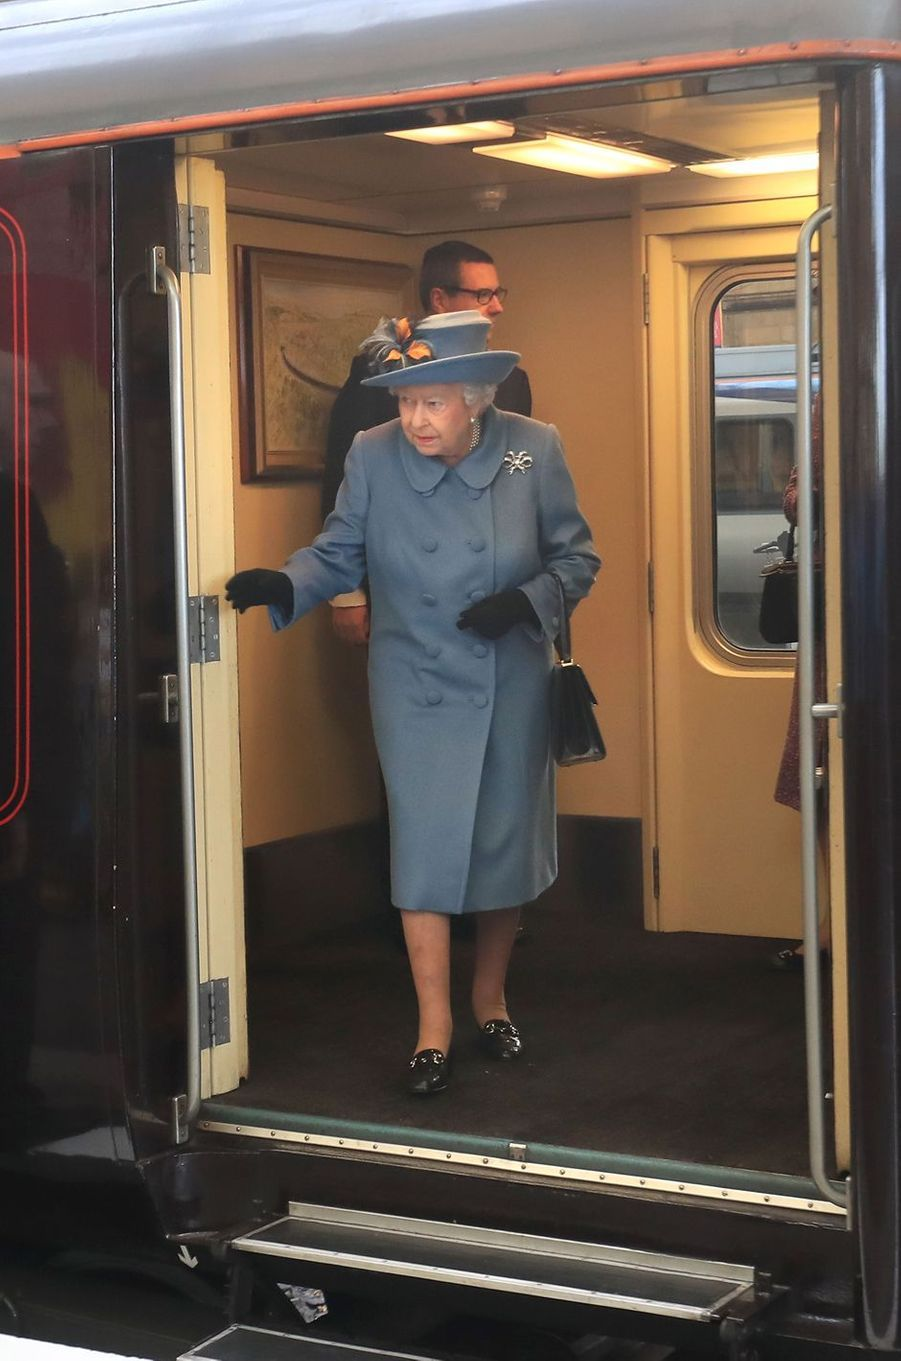 La reine Elizabeth II arrive en train à Kingston-upon-Hull, le 16 novembre 2017